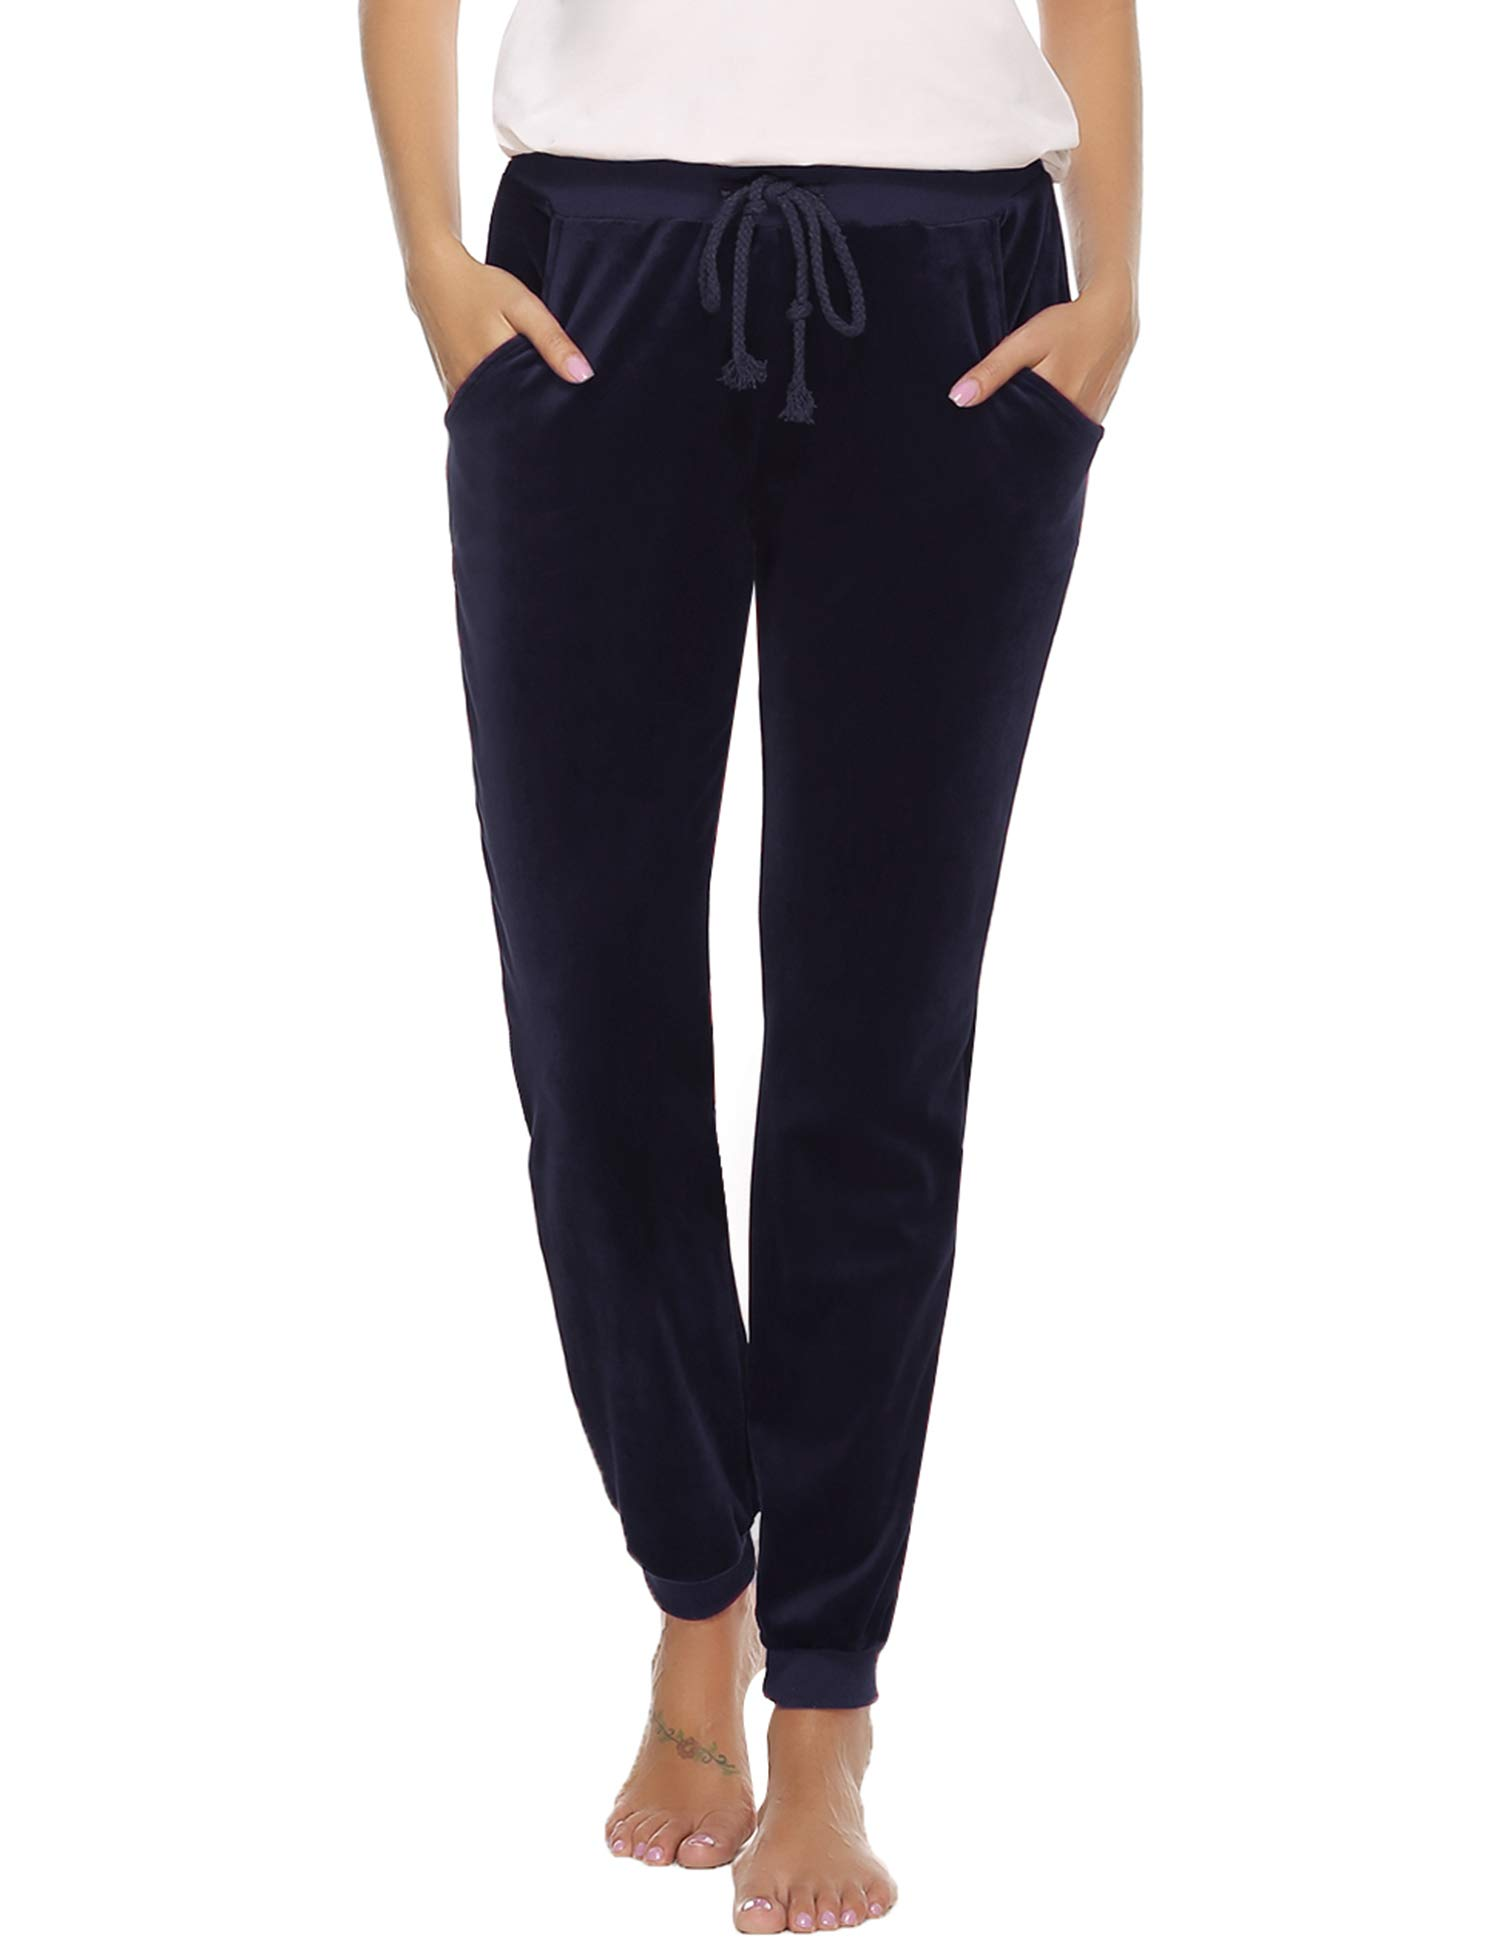 Abollria Women's Drawstring Waist Jogger Solid Velour Sweatpants with Pocket